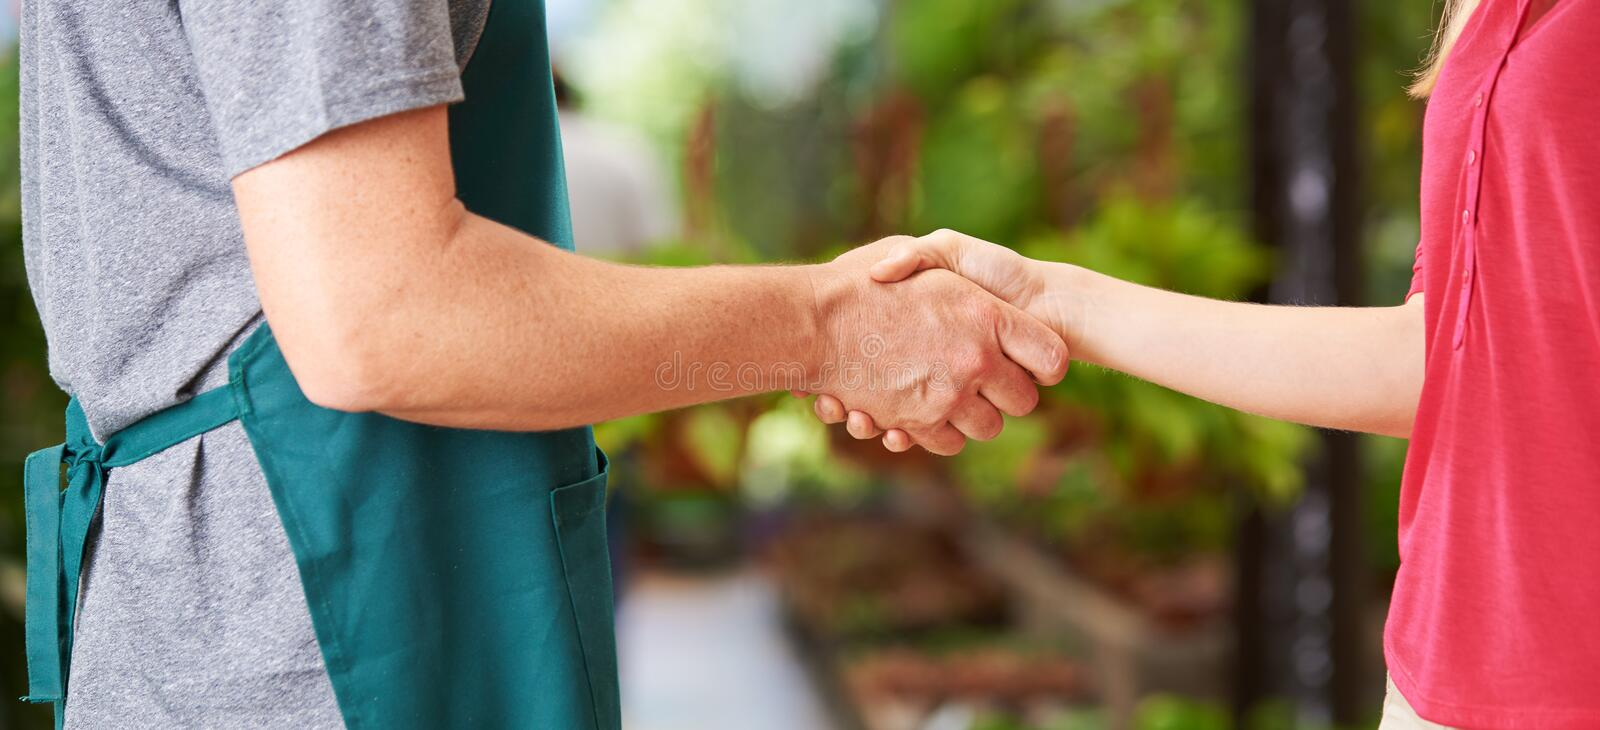 Handshake between worker and woman royalty free stock photos